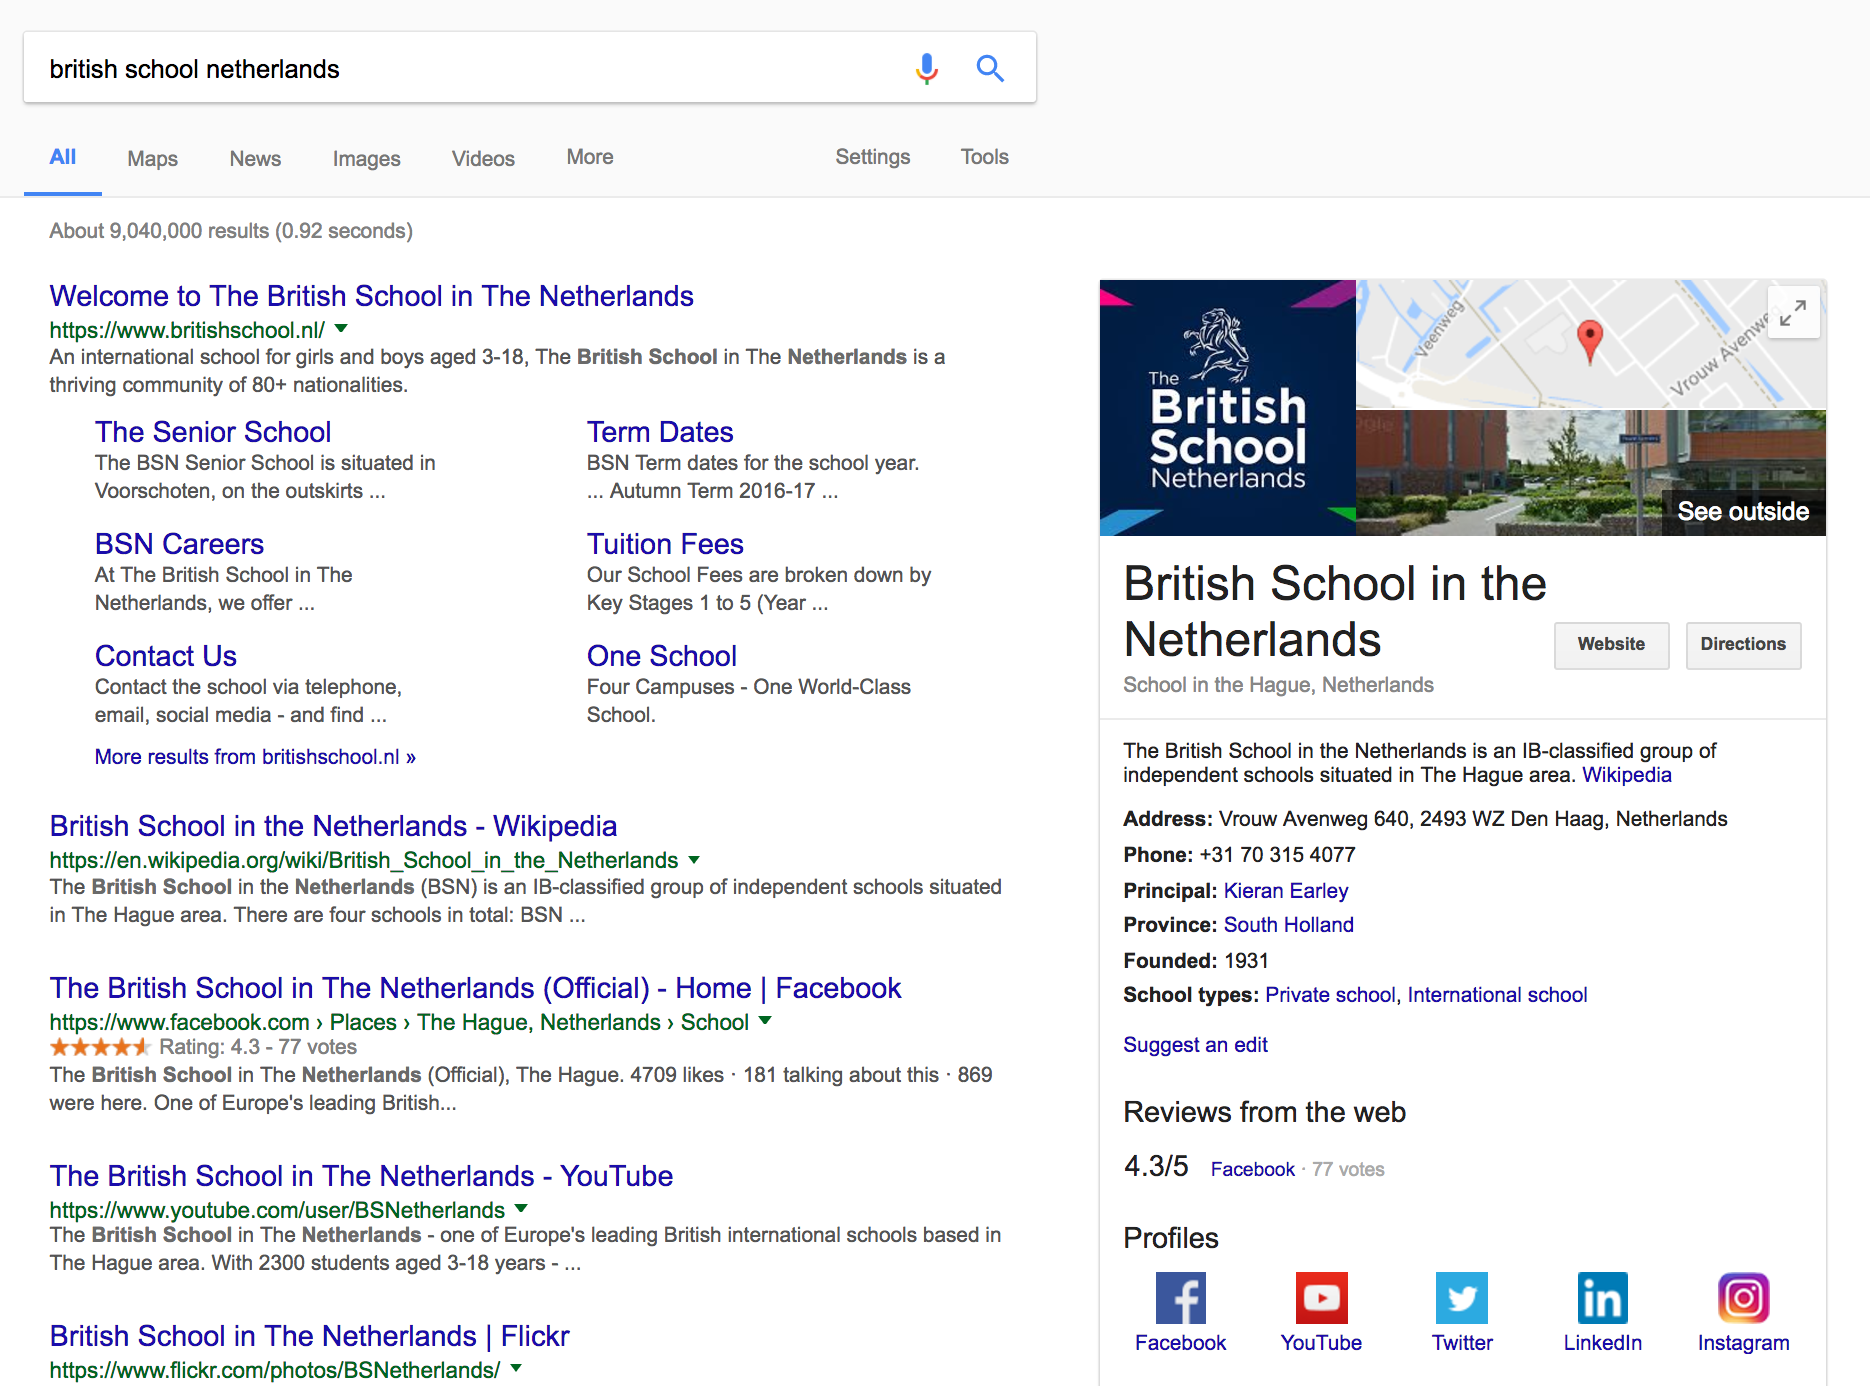 """Notice the information being displayed on the right - this is called the """"Knowledge Panel"""". With effective SEO this will populate with useful information for the end user!"""